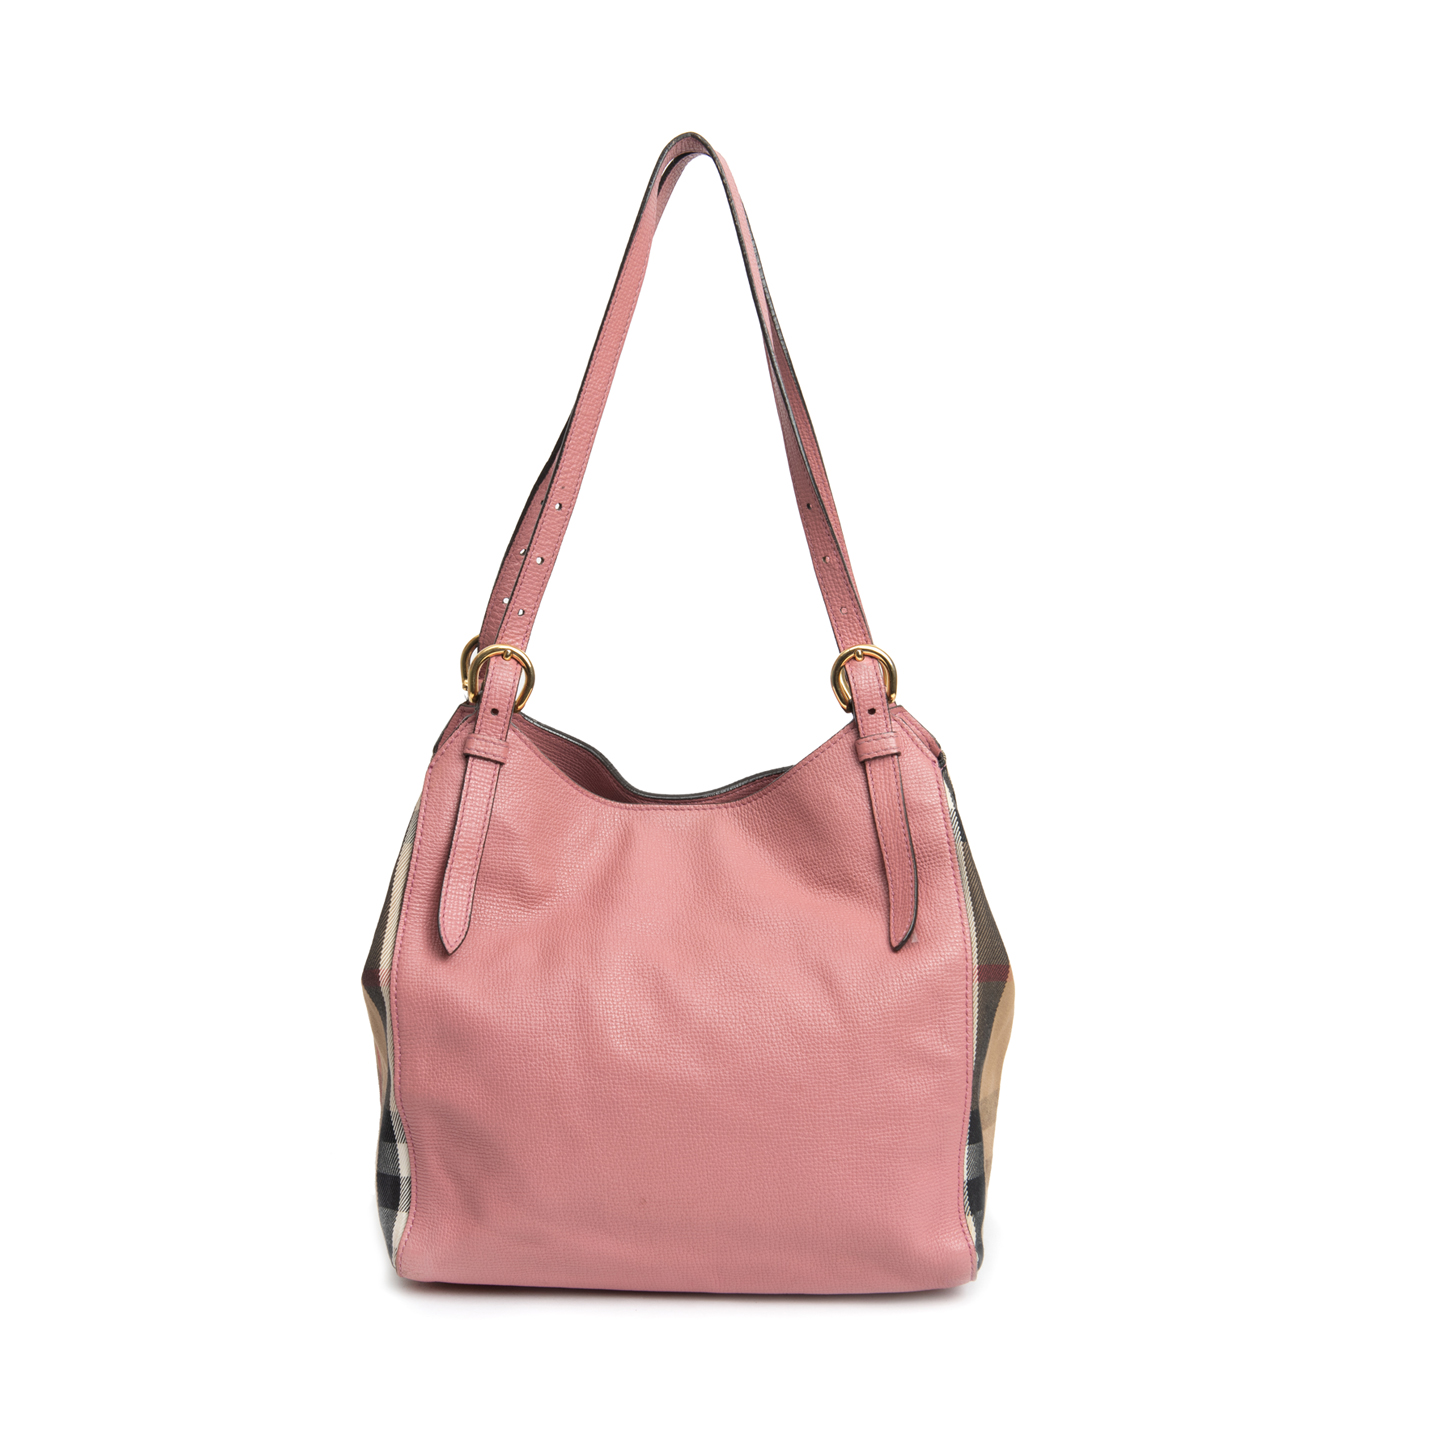 d22d89391de Burberry Pale Orchid Leather and House Check Small Canter Bag 01 ...